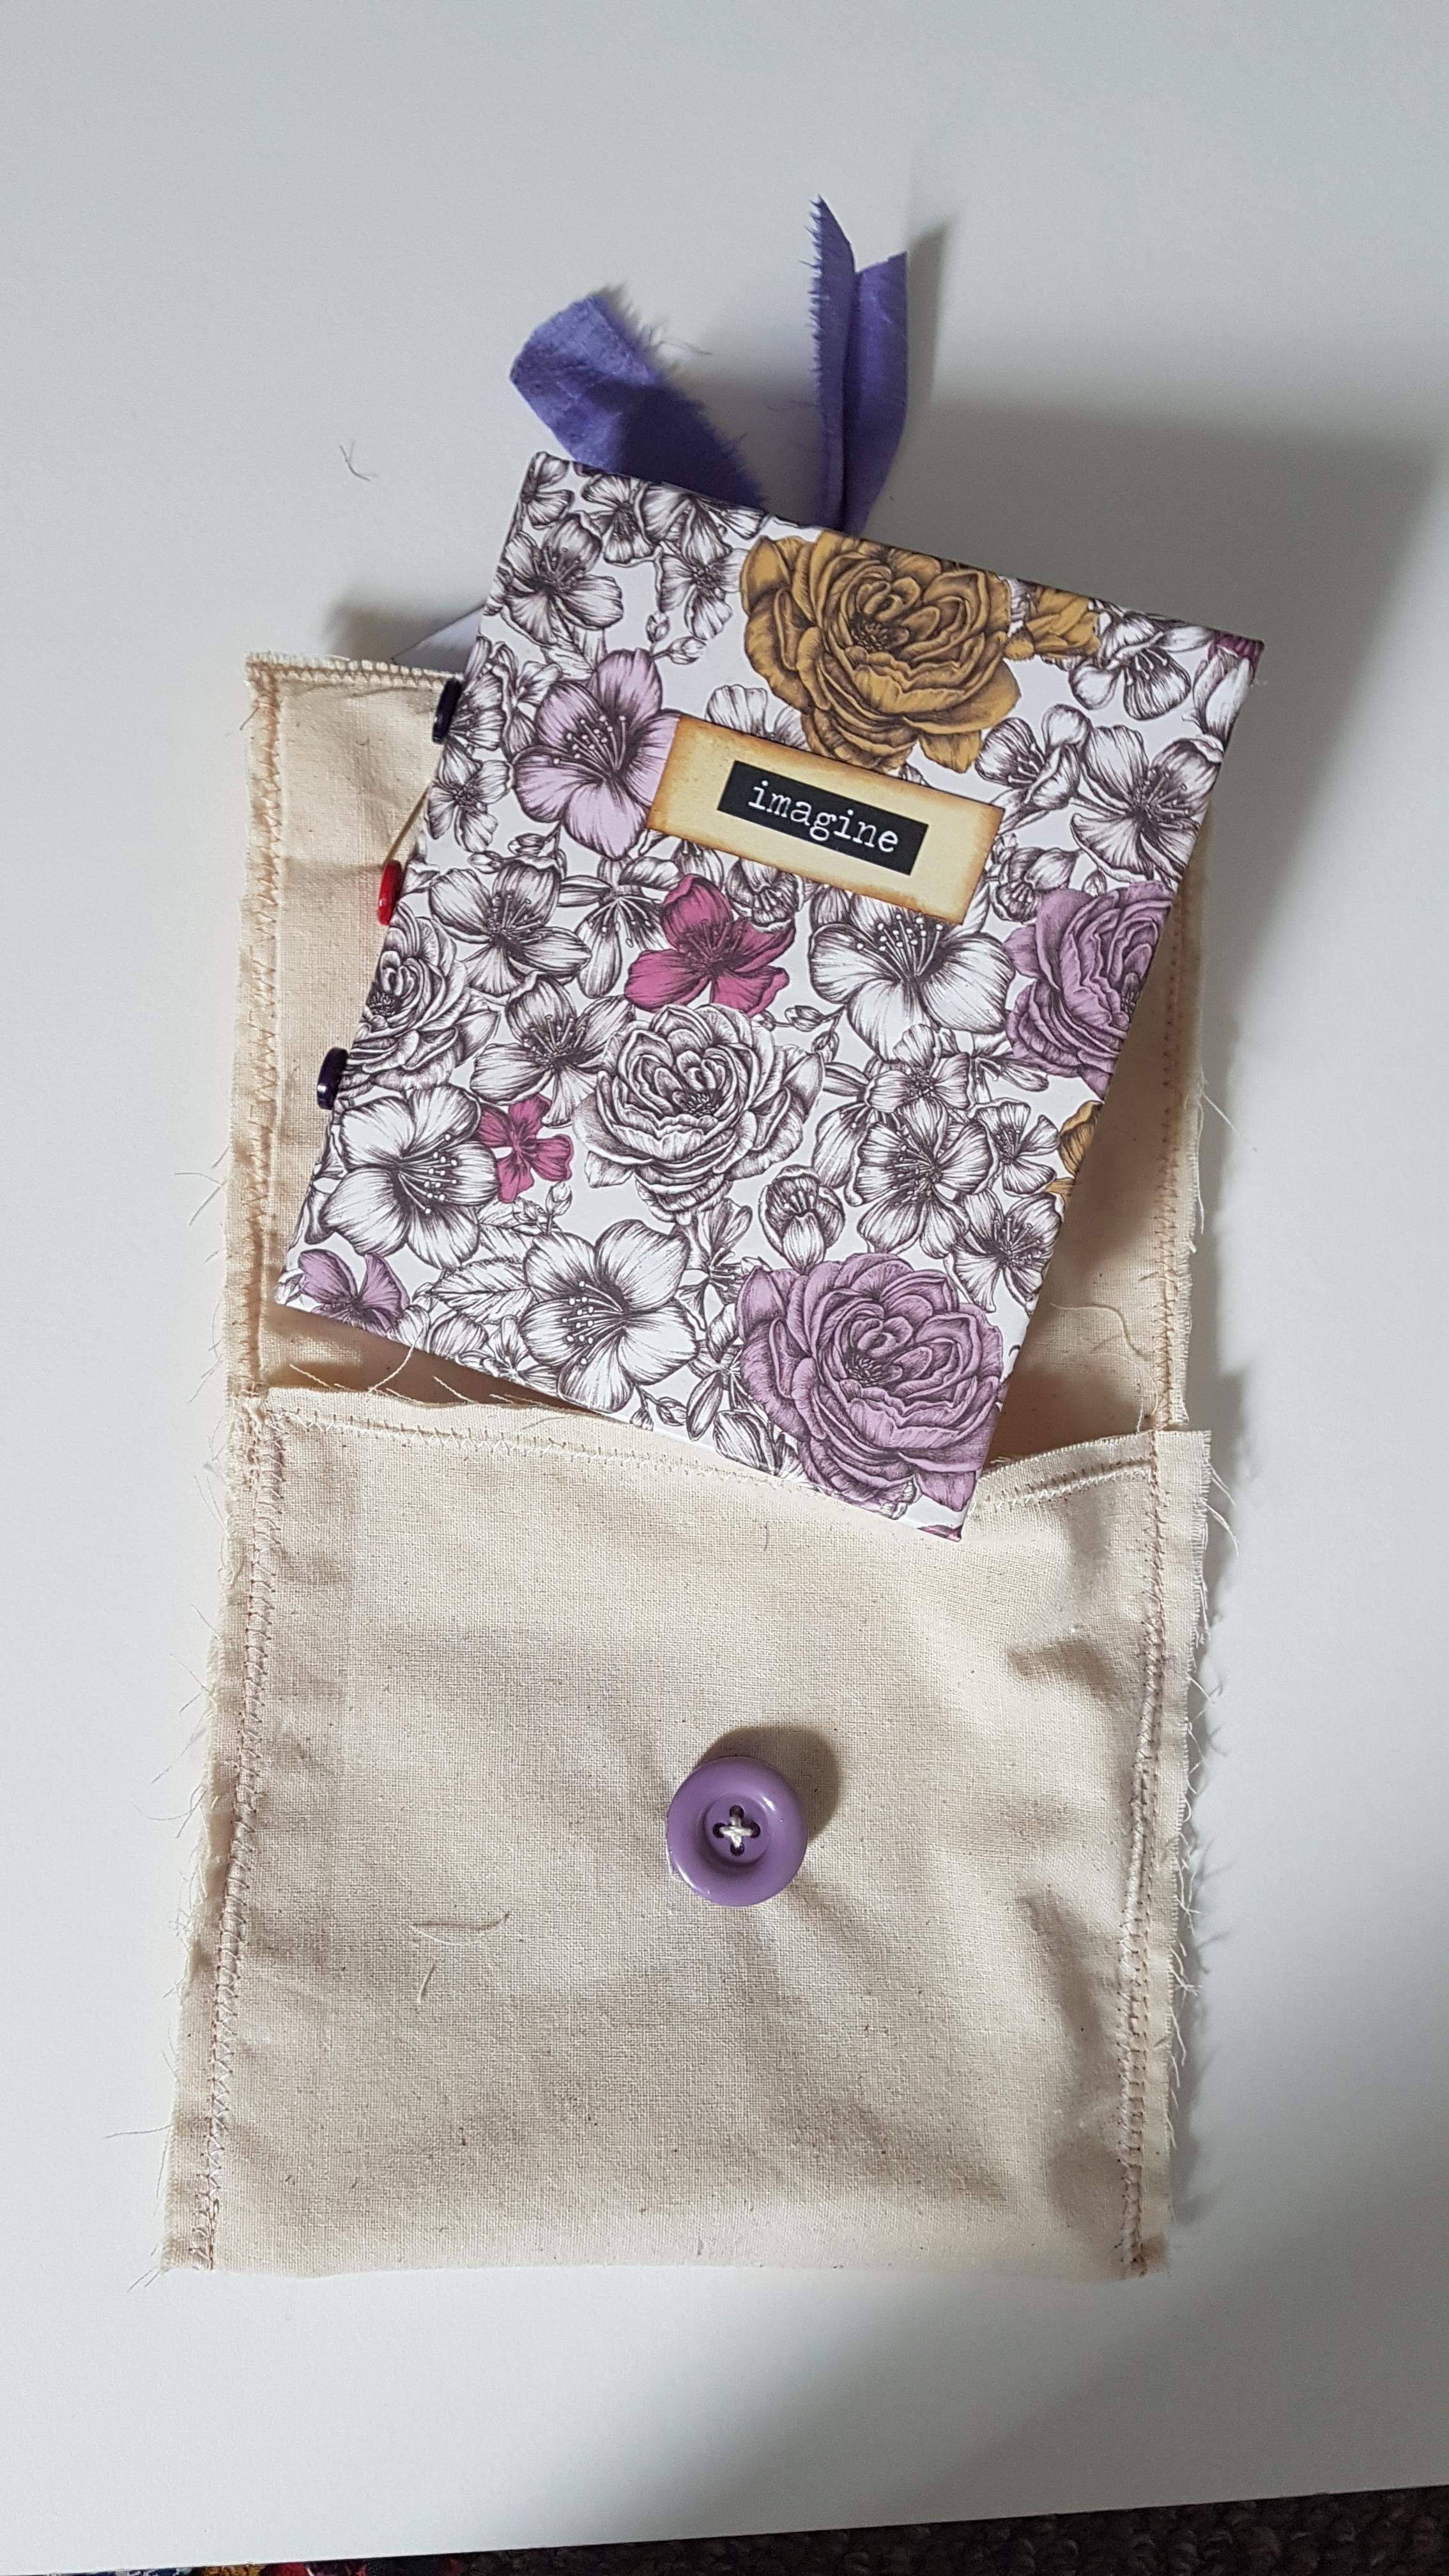 Journal and canvas bag  - All sold